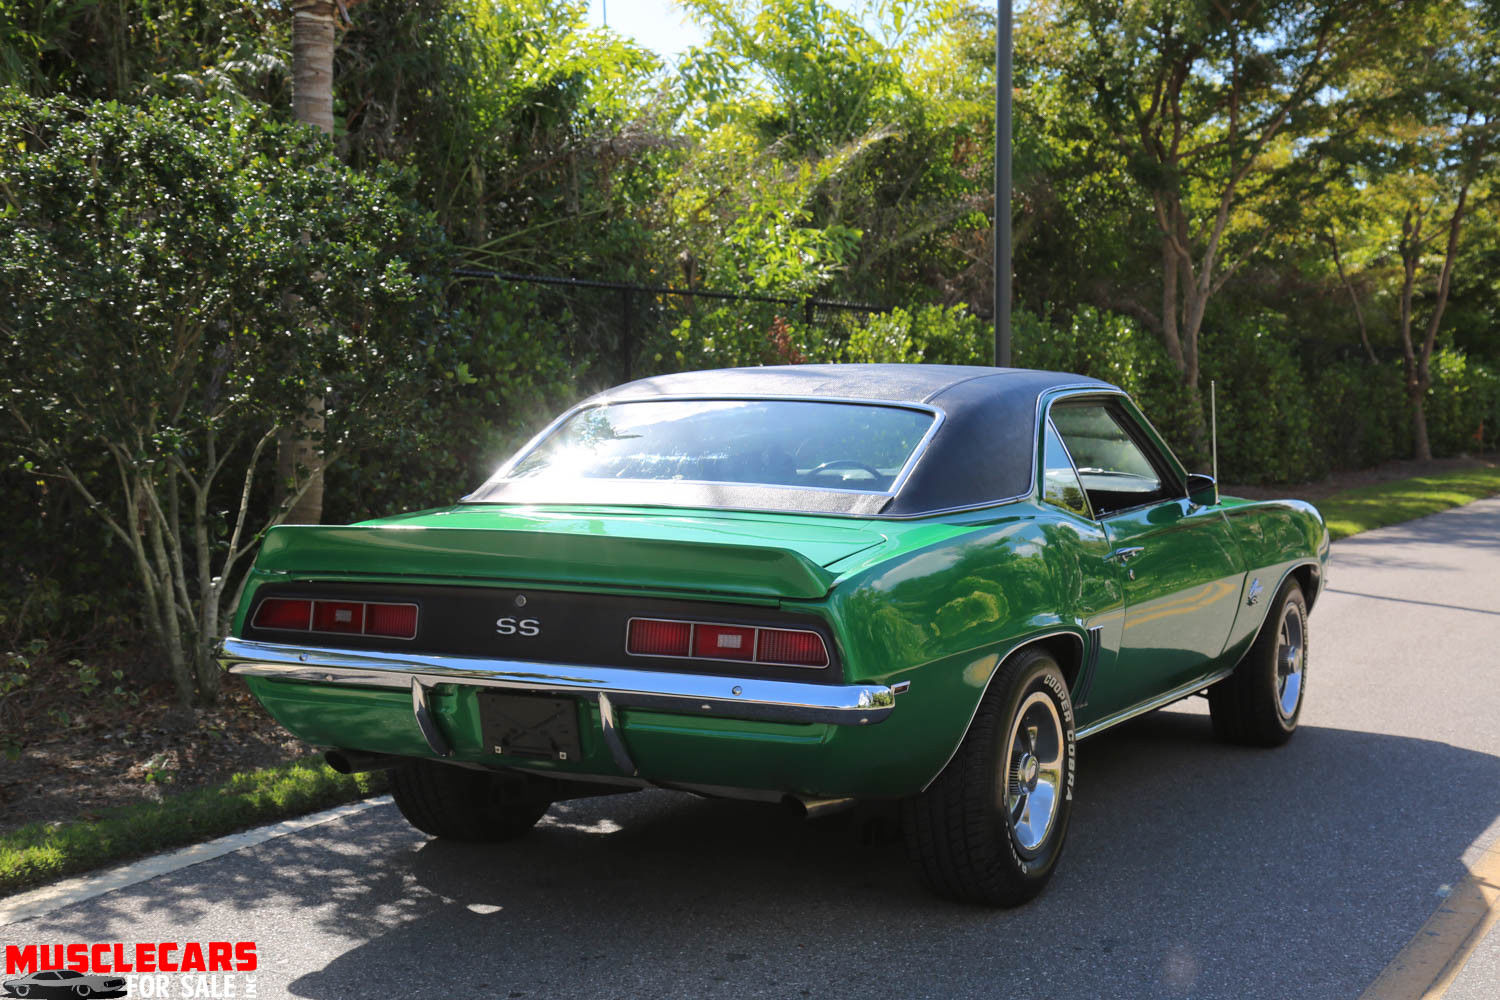 Awesome 1969 Chevrolet Camaro SS 1969 Camaro Rallye Green 2018-2019 | MyCarBoard